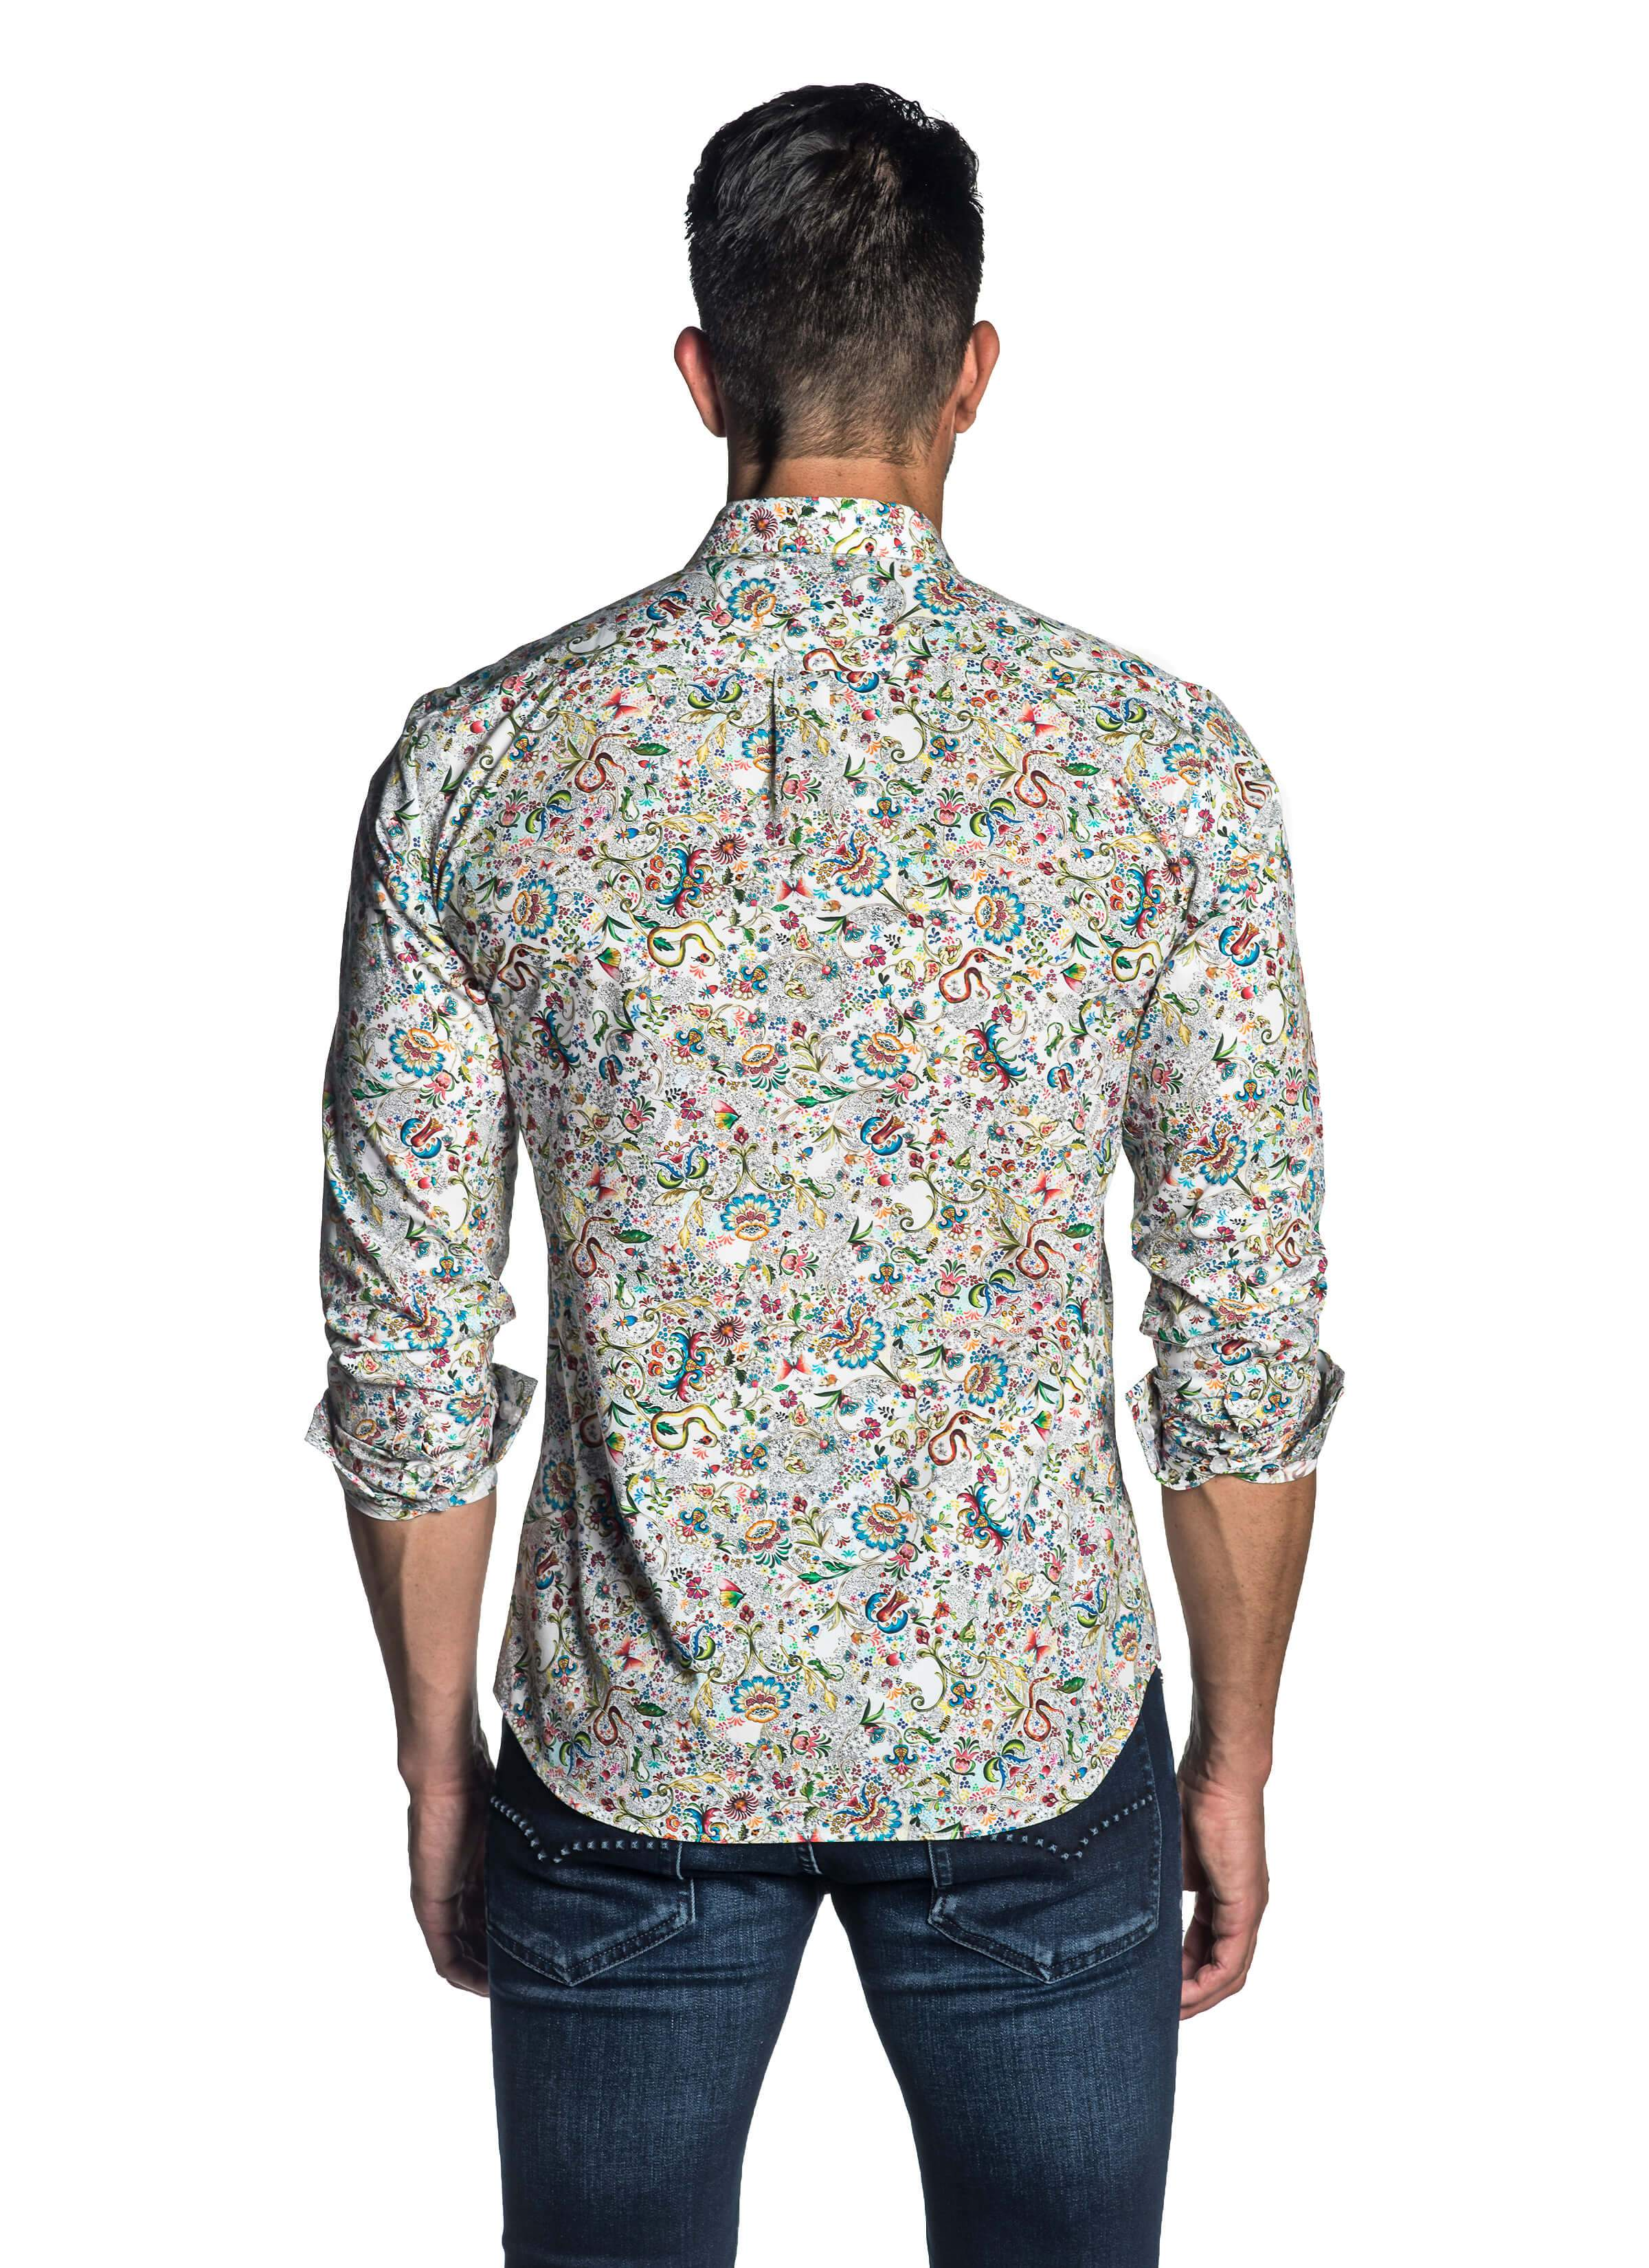 White Multi-colored Floral Degrade Shirt - back AH-T-7063